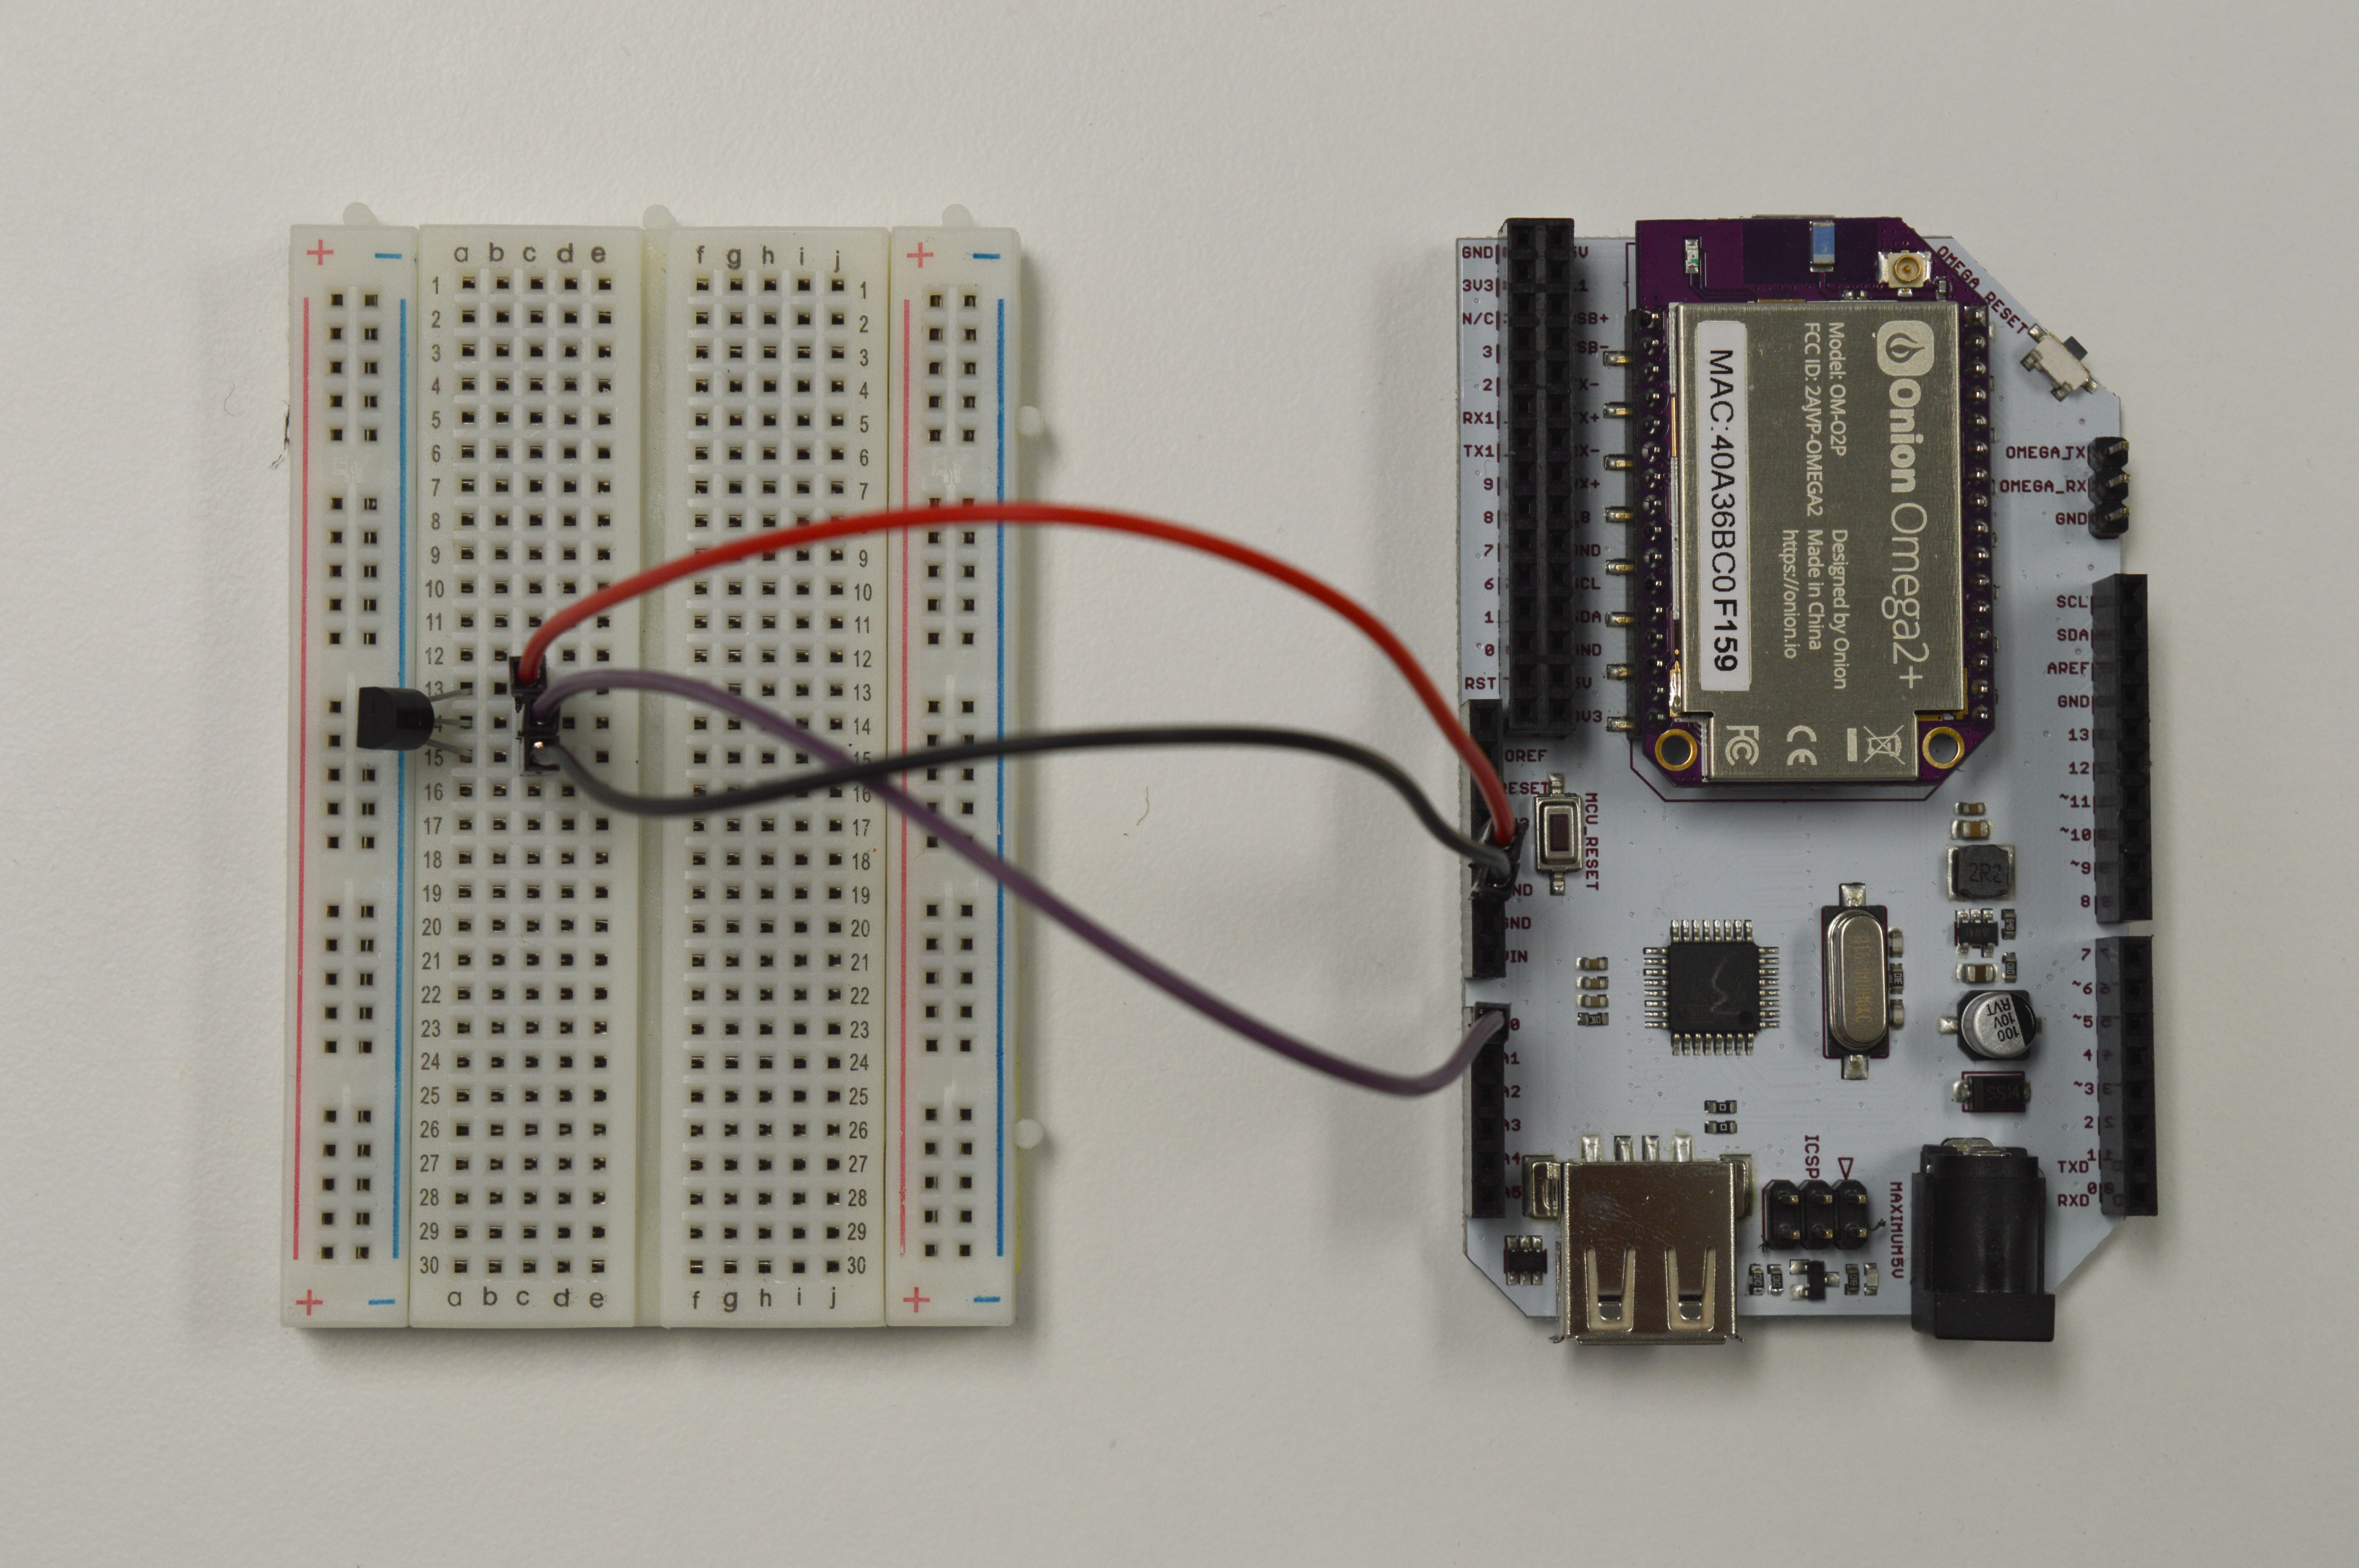 The temperature sensor connected to the Arduino Dock